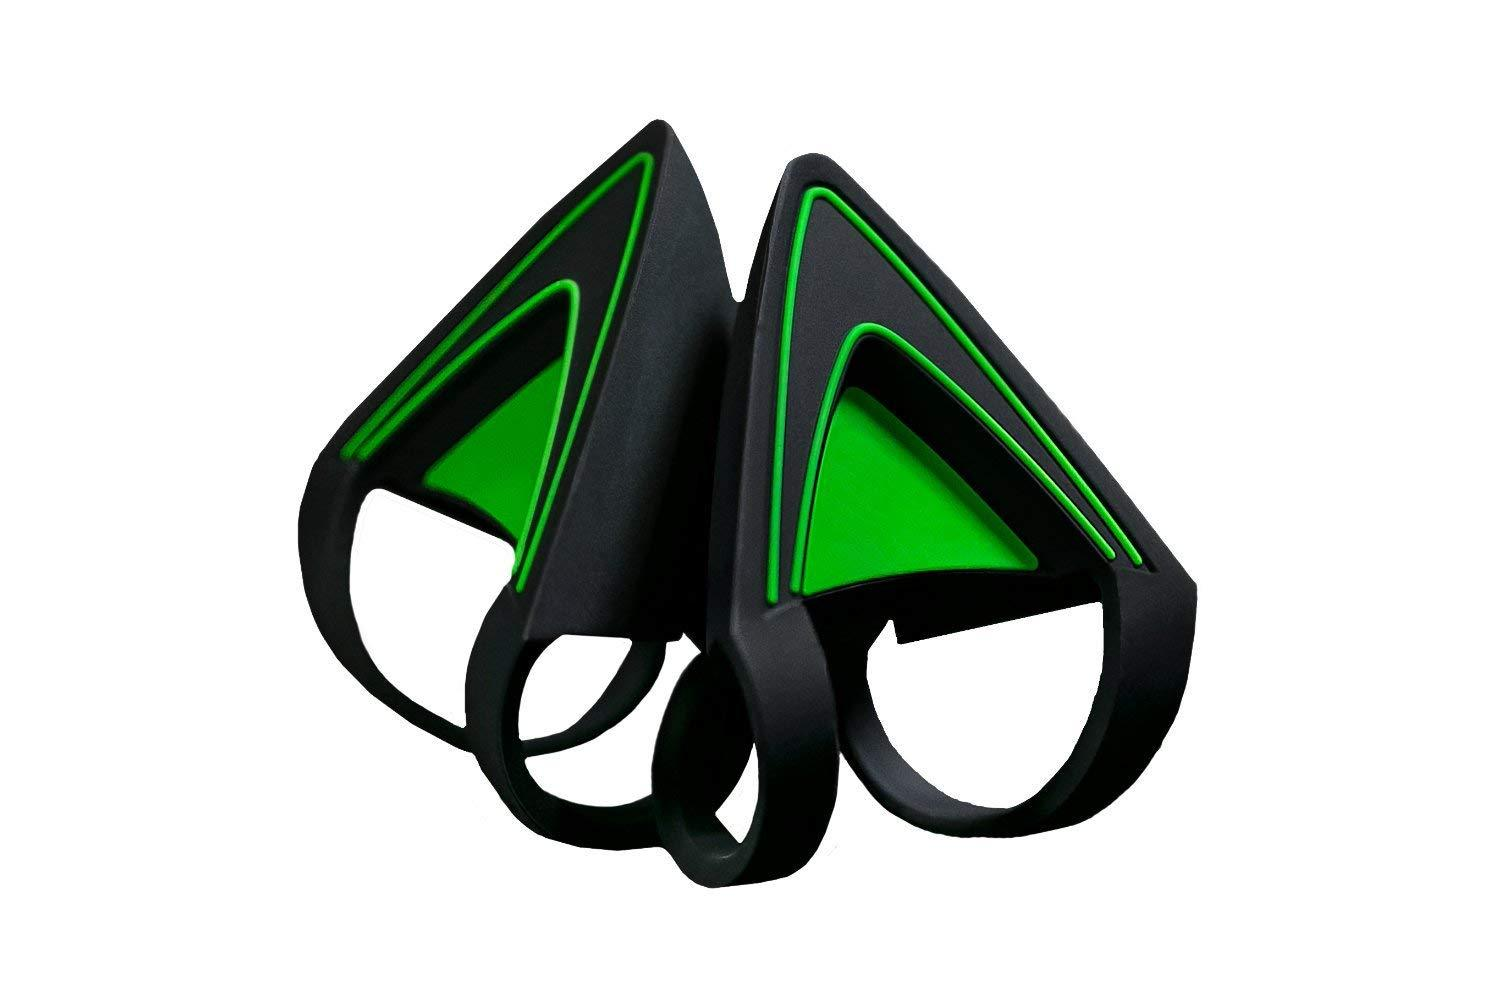 Razer Kitty Ears for Kraken - Green